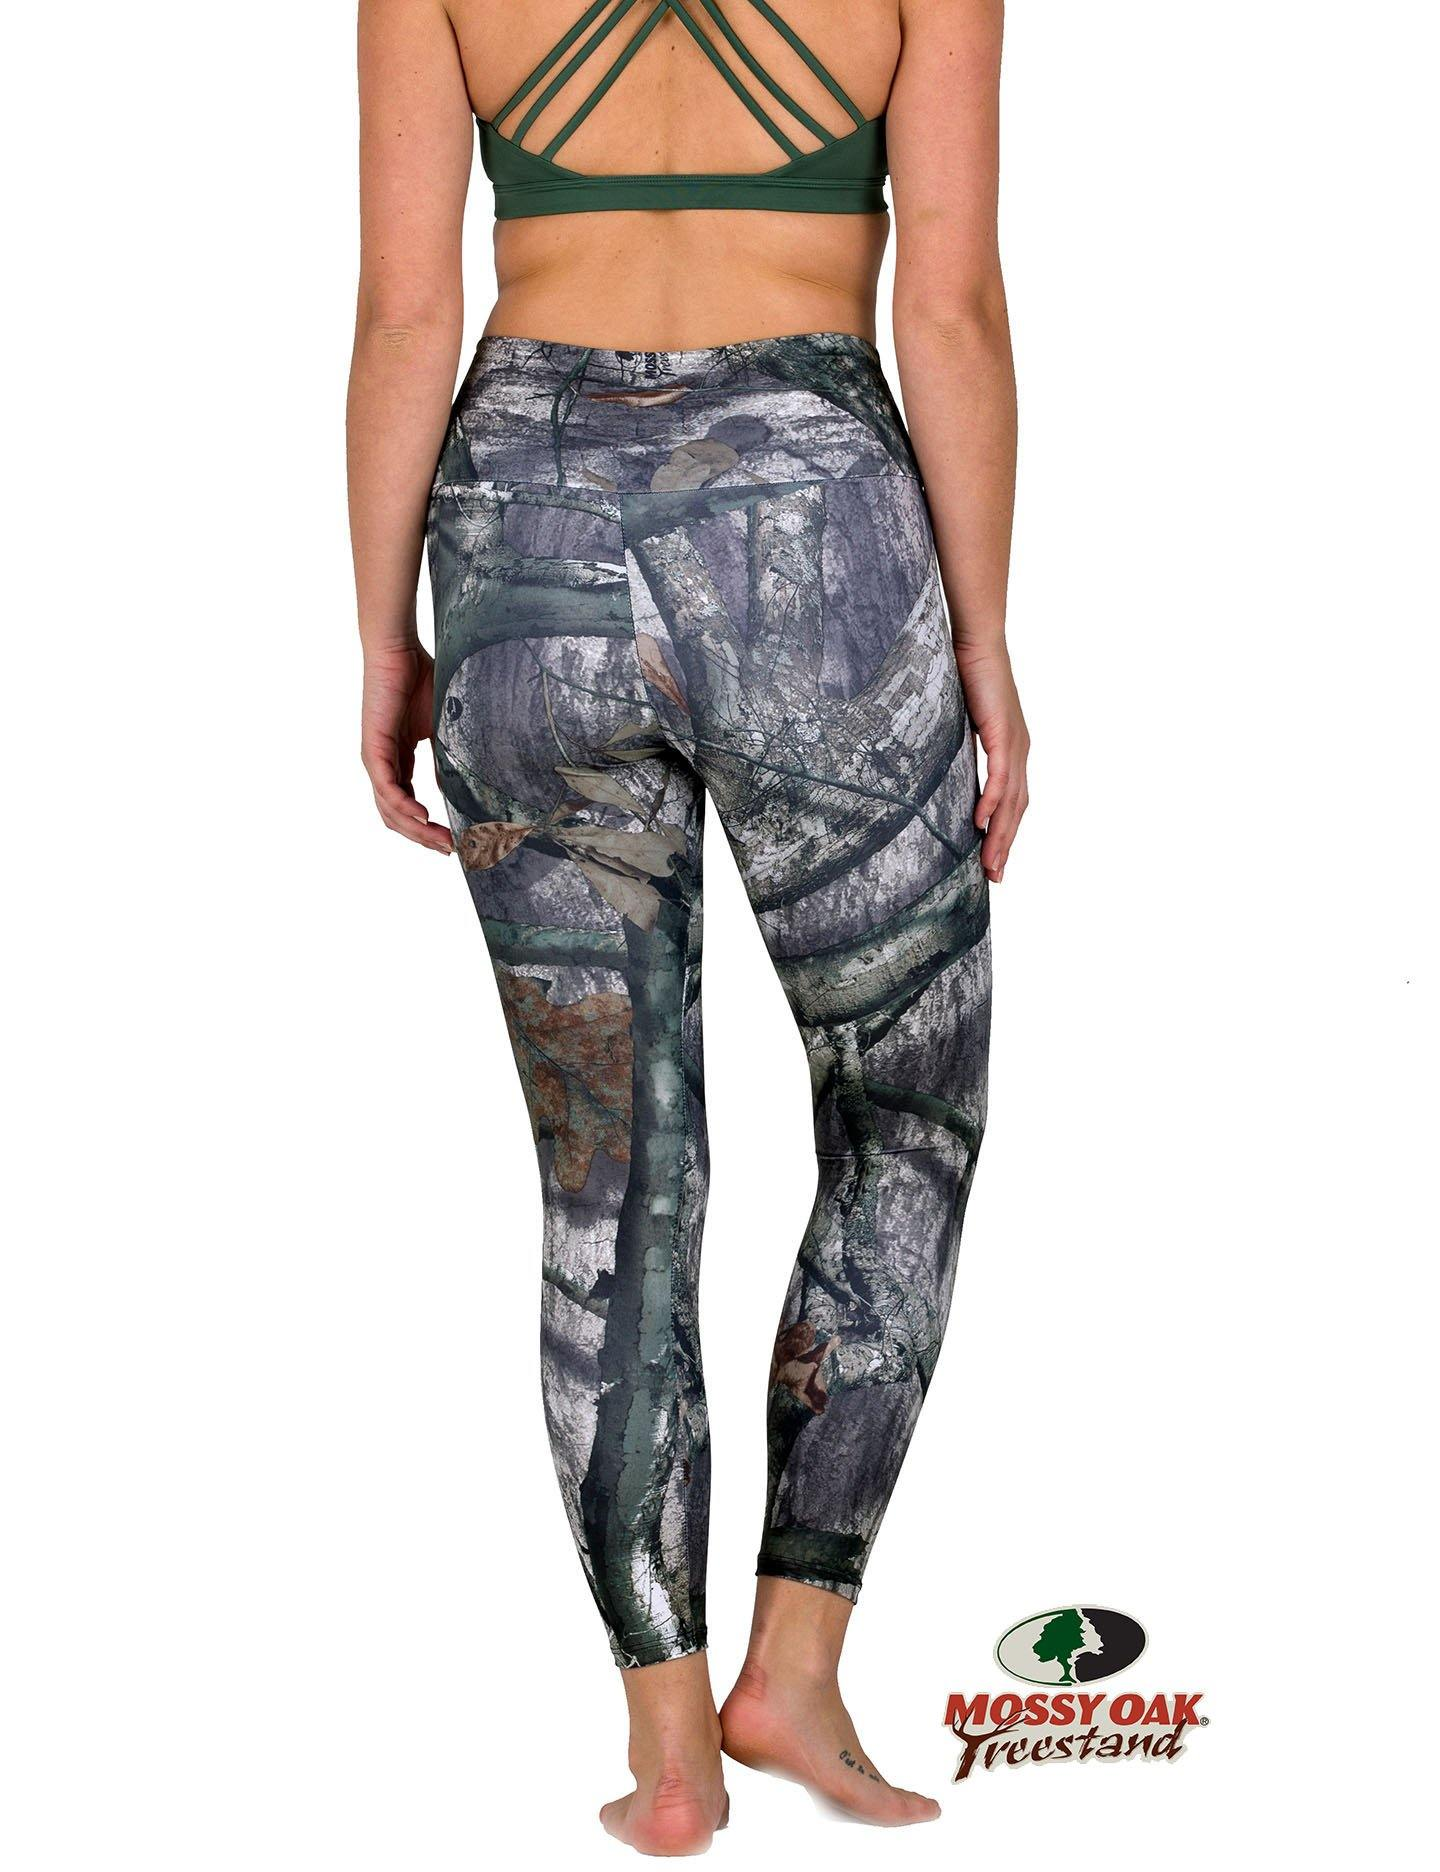 Apsara Leggings Low Waist Capri, Mossy Oak Treestand